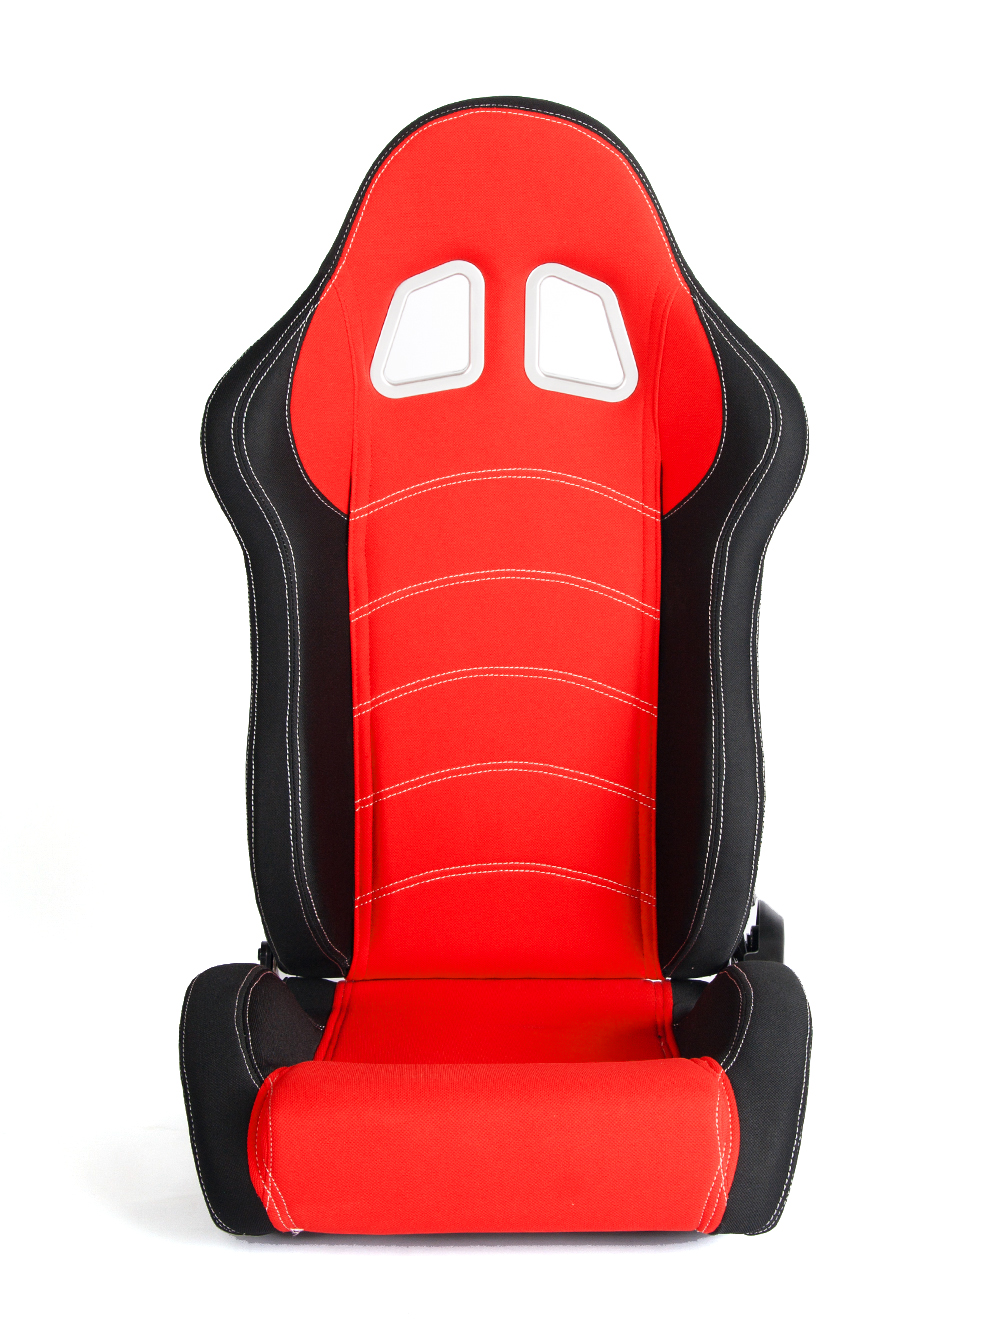 CPA1018 Black and Red Cloth Racing Seats (PAIR)